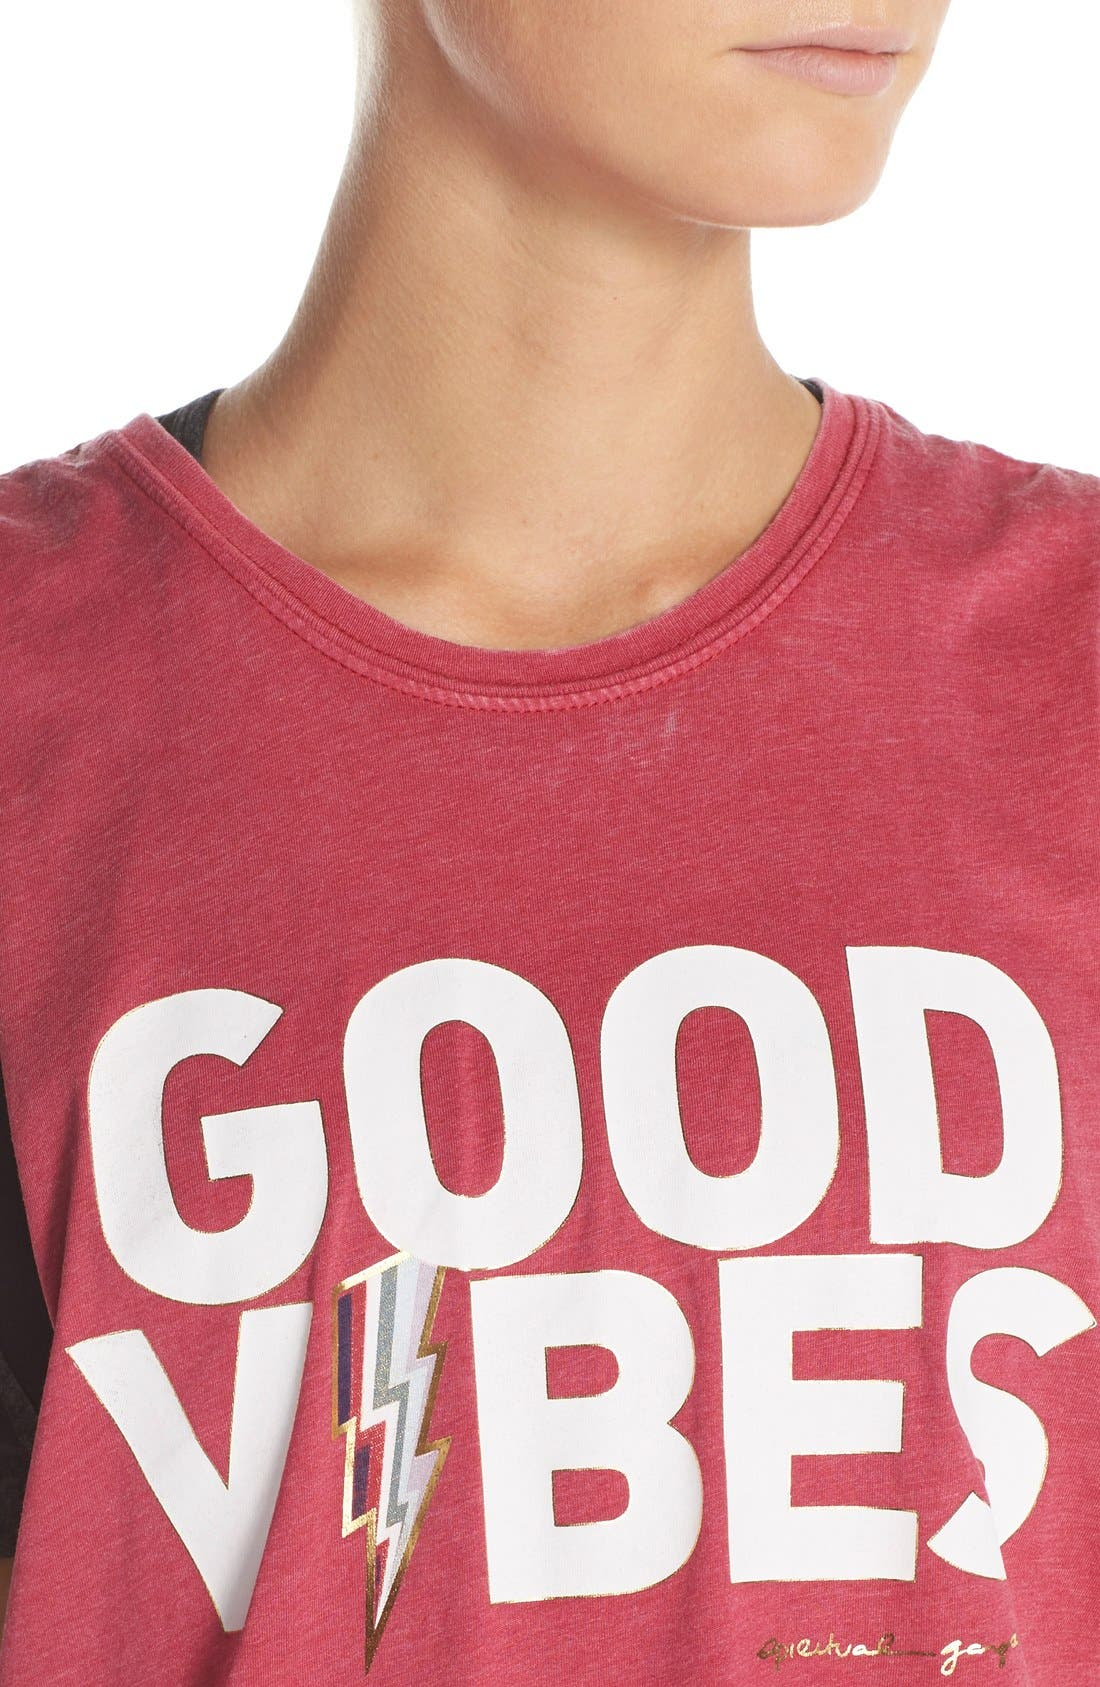 'Good Vibes' Muscle Tank,                             Alternate thumbnail 3, color,                             Popsicle